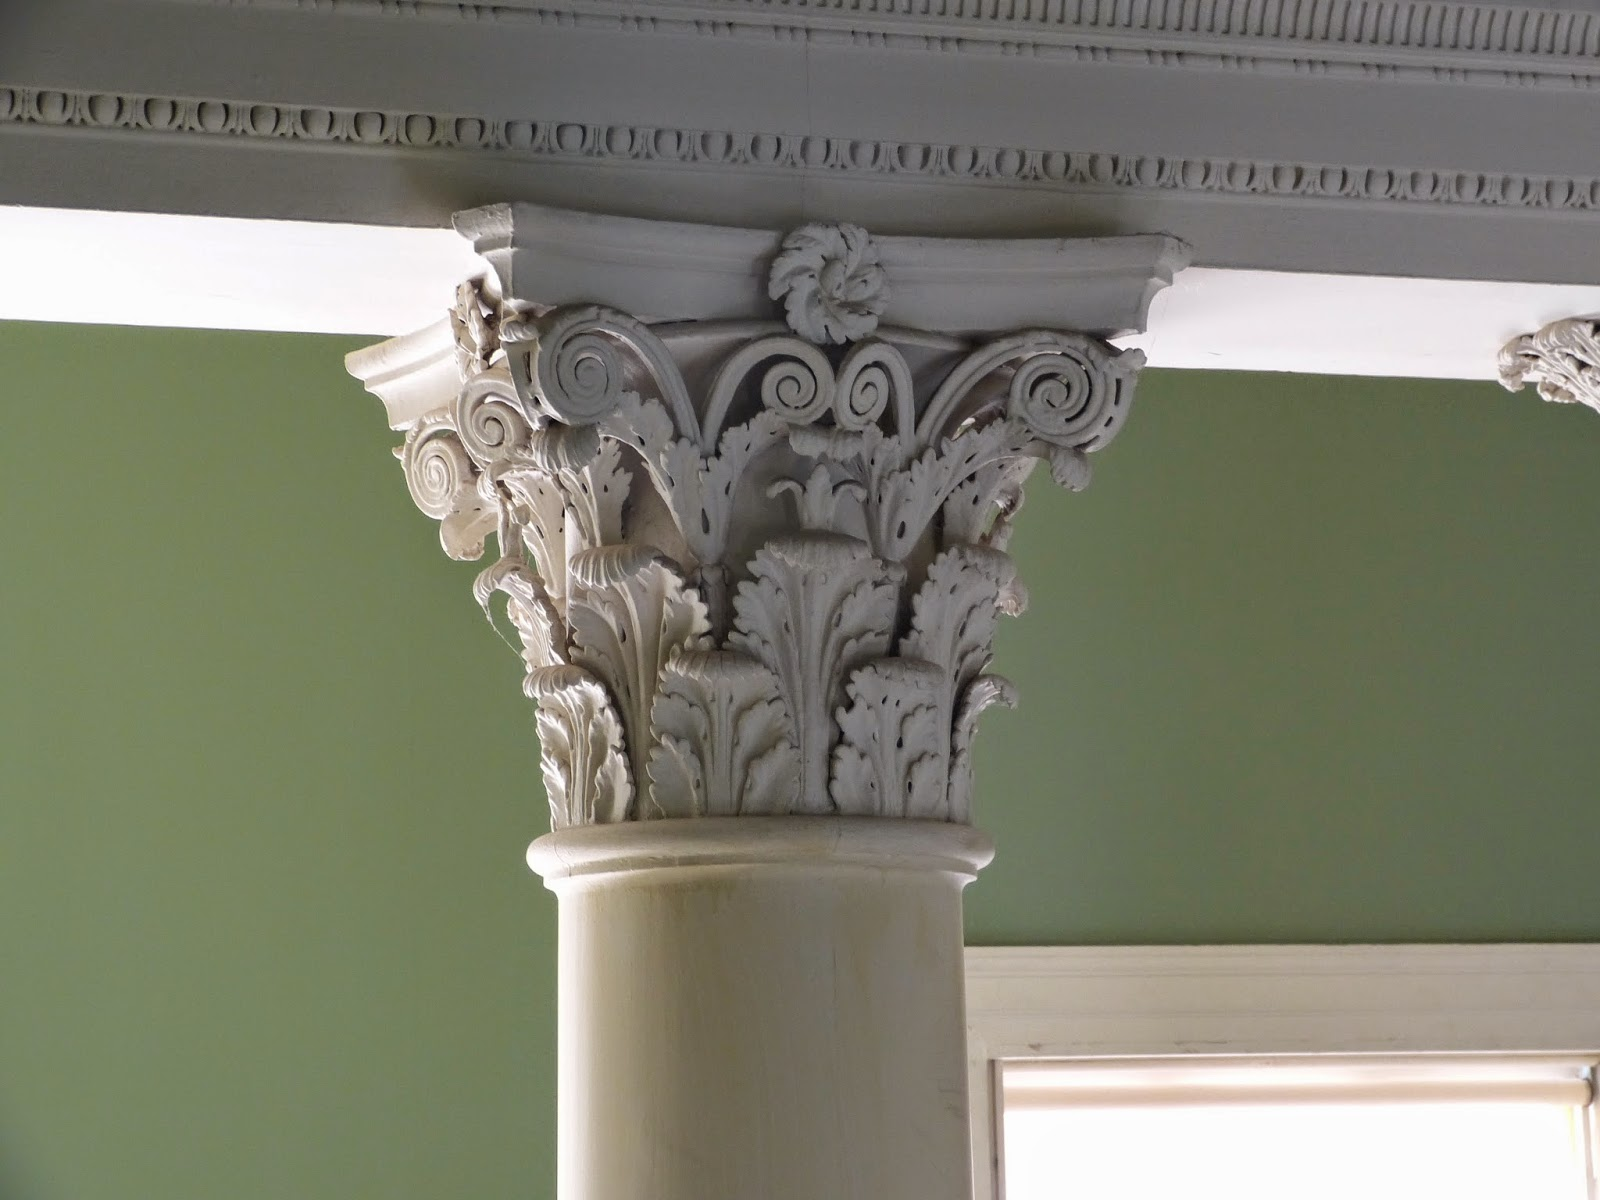 Detail from one of the pillars of the Great Stair, Osterley